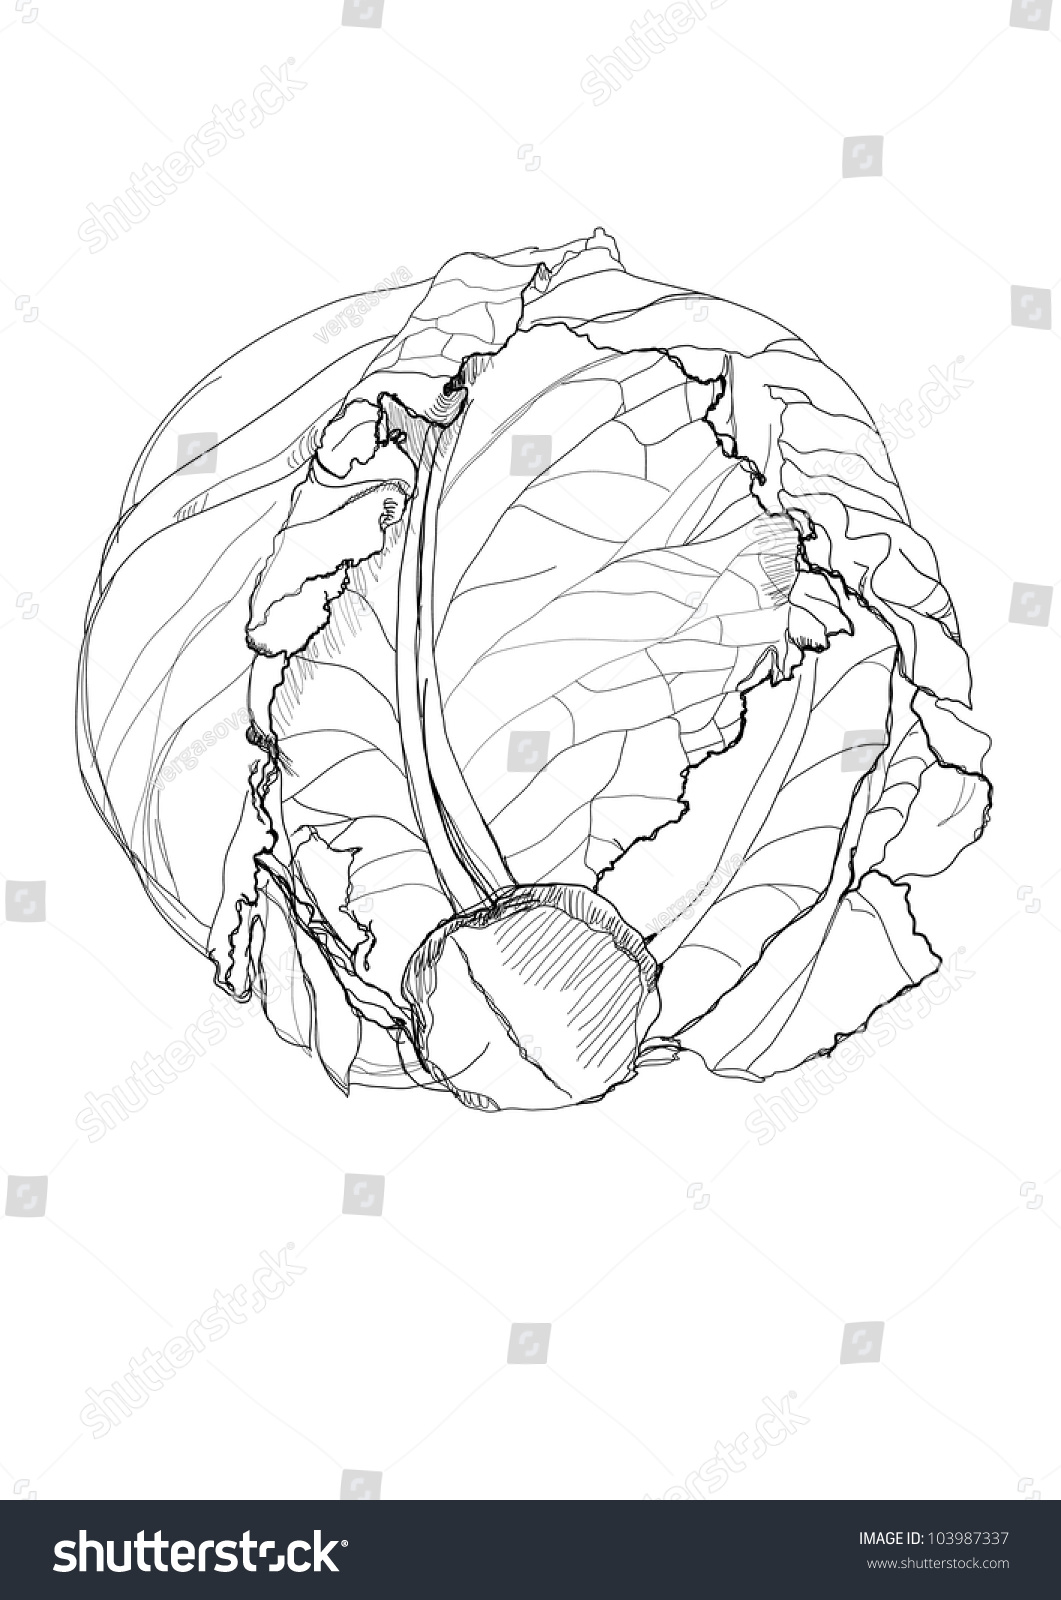 Diagram Of A Cabbage Best Secret Wiring Butterfly Pencil Drawing On White Background Stock Vector Royalty Rh Shutterstock Com